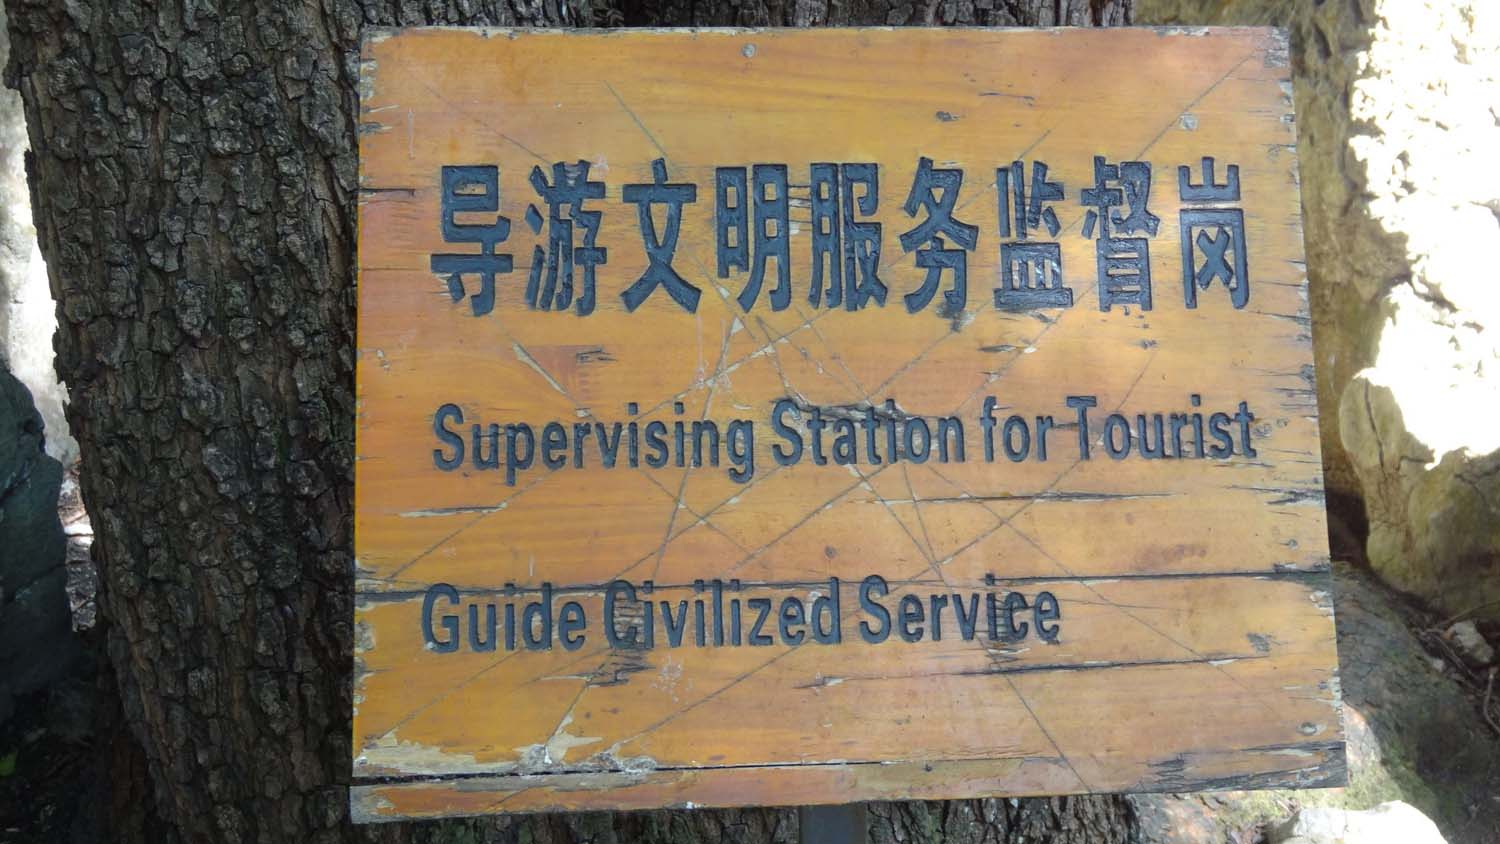 wonder if they have an uncivilized guide service as well…